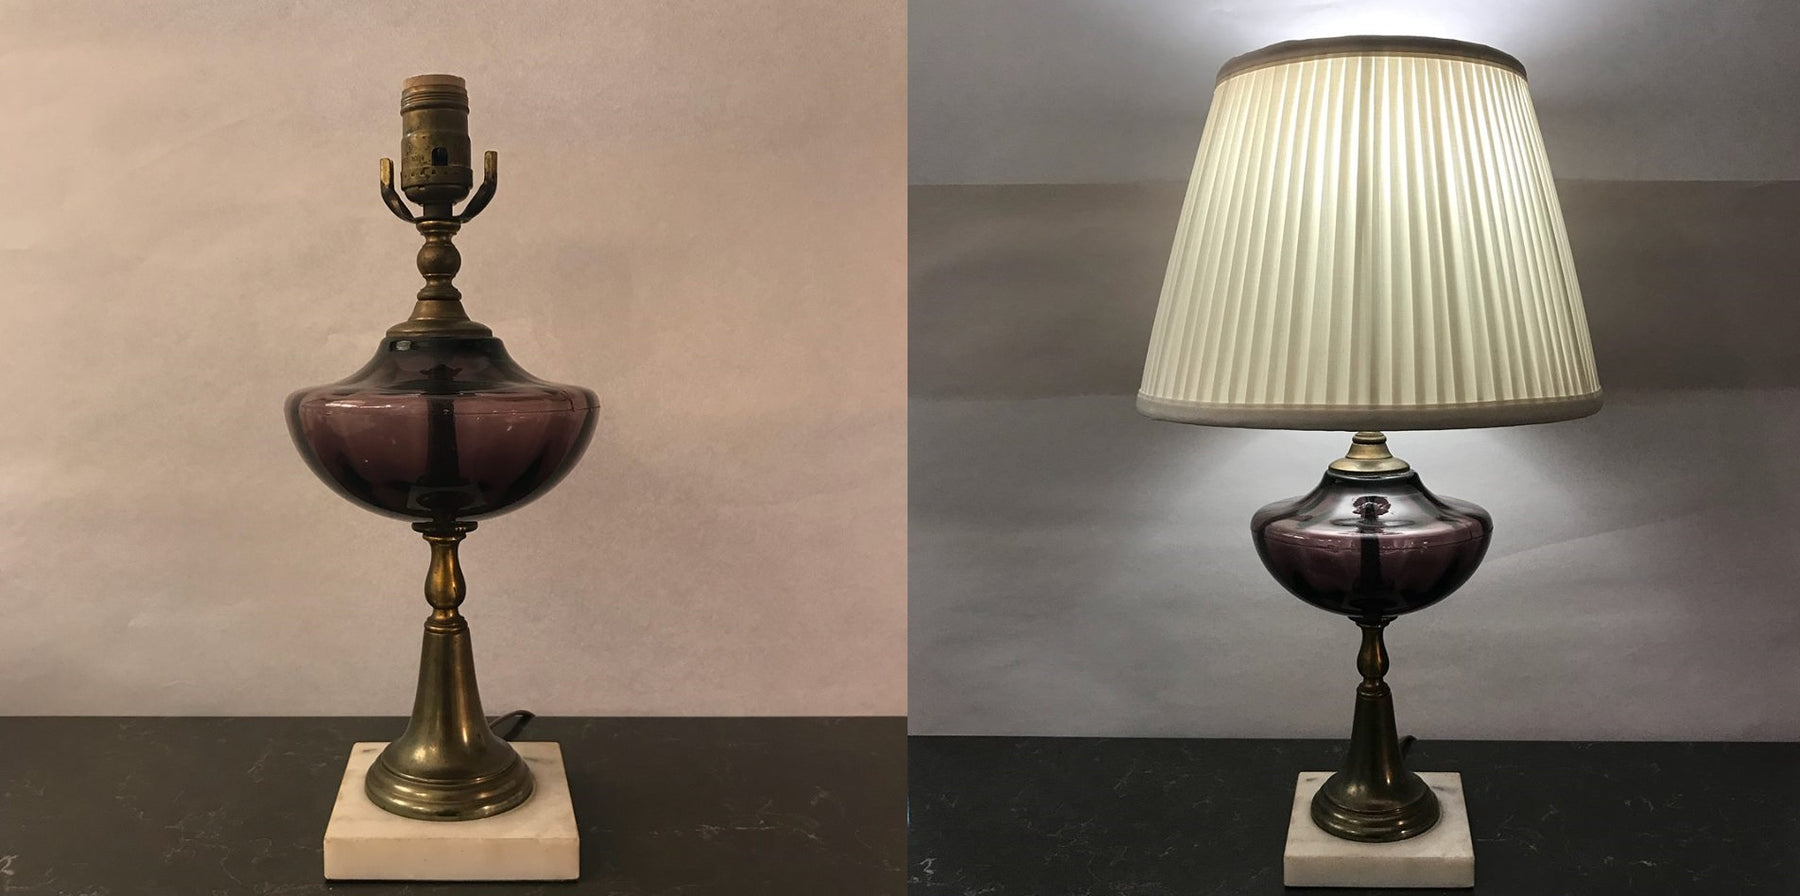 How to Make an Old Lamp Look New